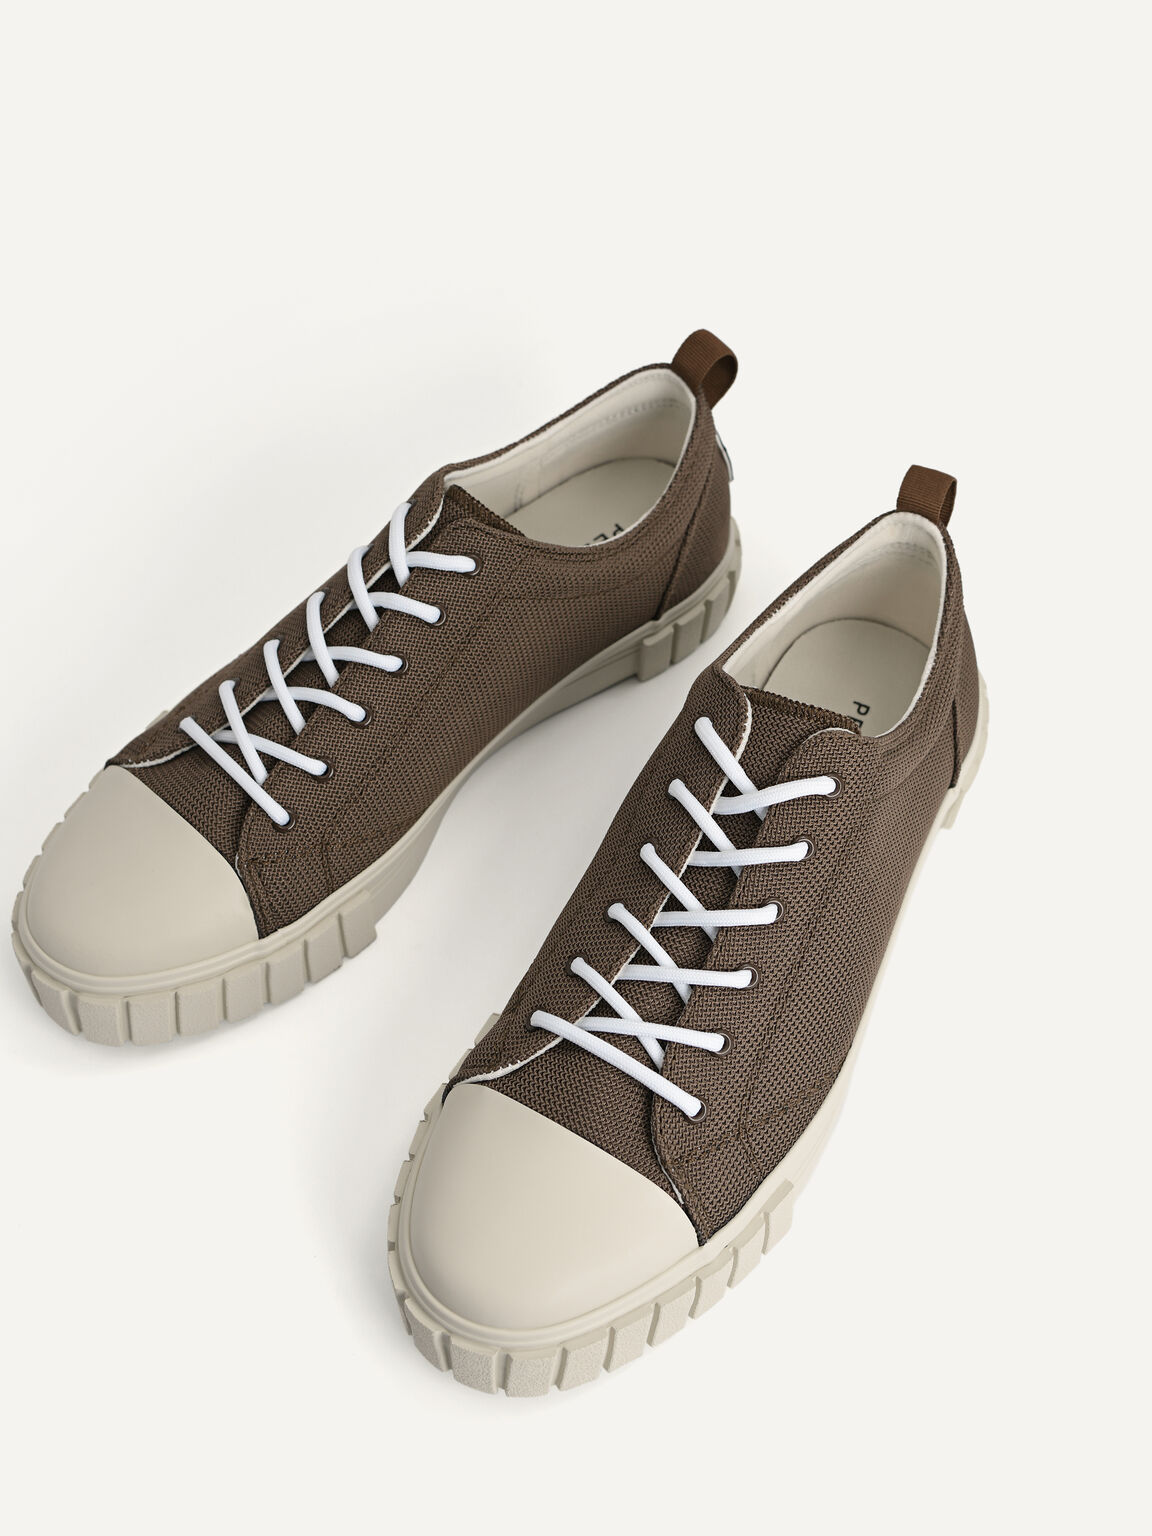 Beat Court Sneakers, Olive, hi-res